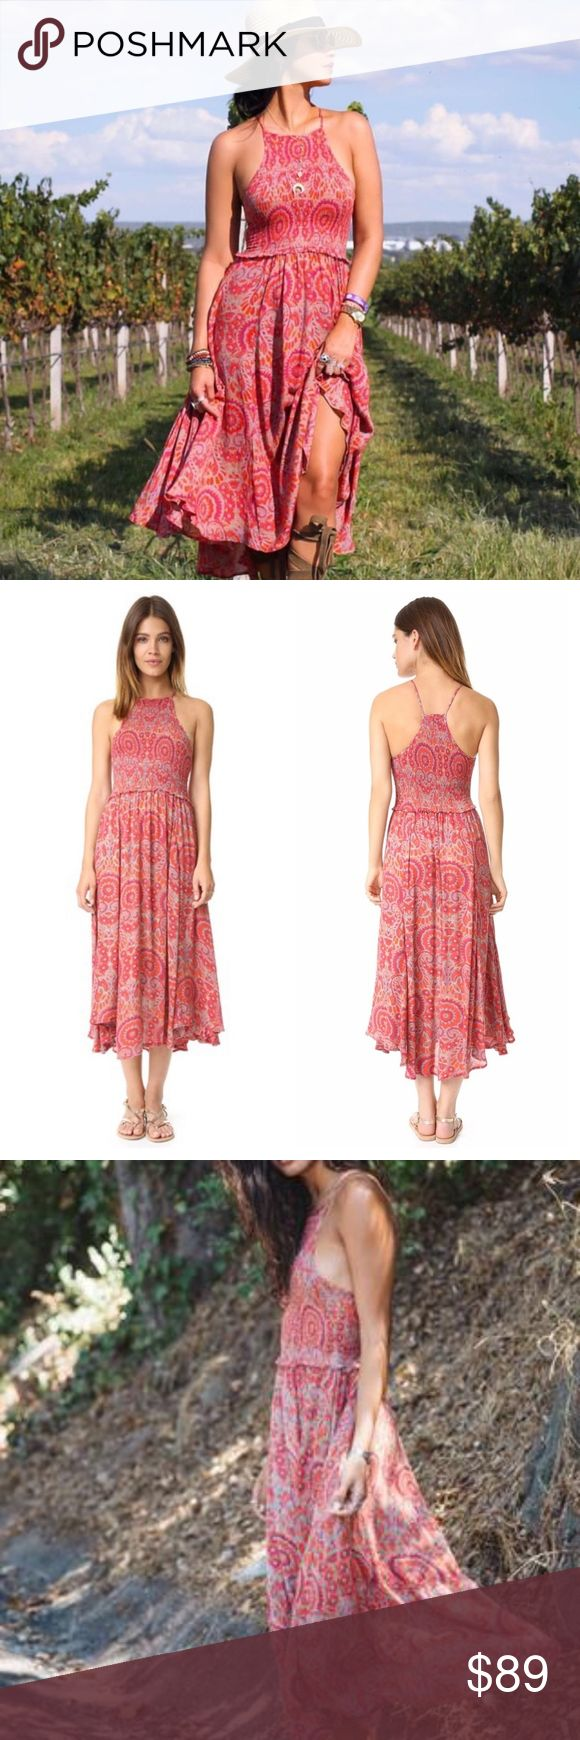 """Free People Red Combo 'Season In The Sun' Dress Gently shirred through the bodice, this summery slipdress has an easy shape and comfortable fit that's perfect for sun-soaked afternoons and balmy nights. Slips on over head. Great condition. Minor wear. No imperfections. Jewel neck. Unlined. 100% rayon. Halter.  smocked bodice Gathered skirt.  asymmetric hem. midi length V-racerback.  allover paisley and floral print. Measurements  Bust: 27"""" = 68.58 cm Waist: 25"""" = 63.5 cm Length: 44.75""""…"""